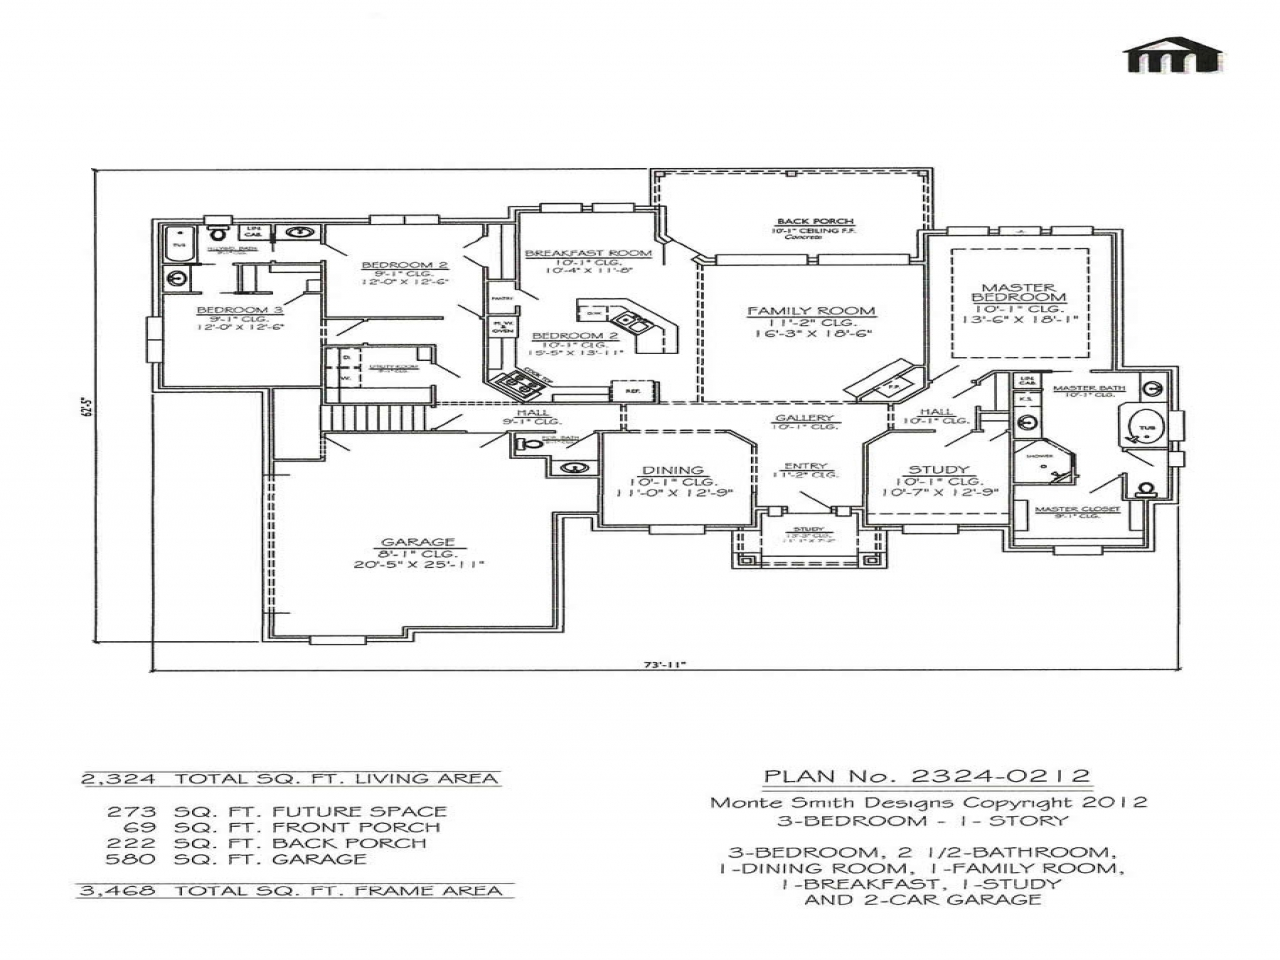 2 story 3 bedroom house plans long lots blueprints 3 for 2 bedroom beach house plans